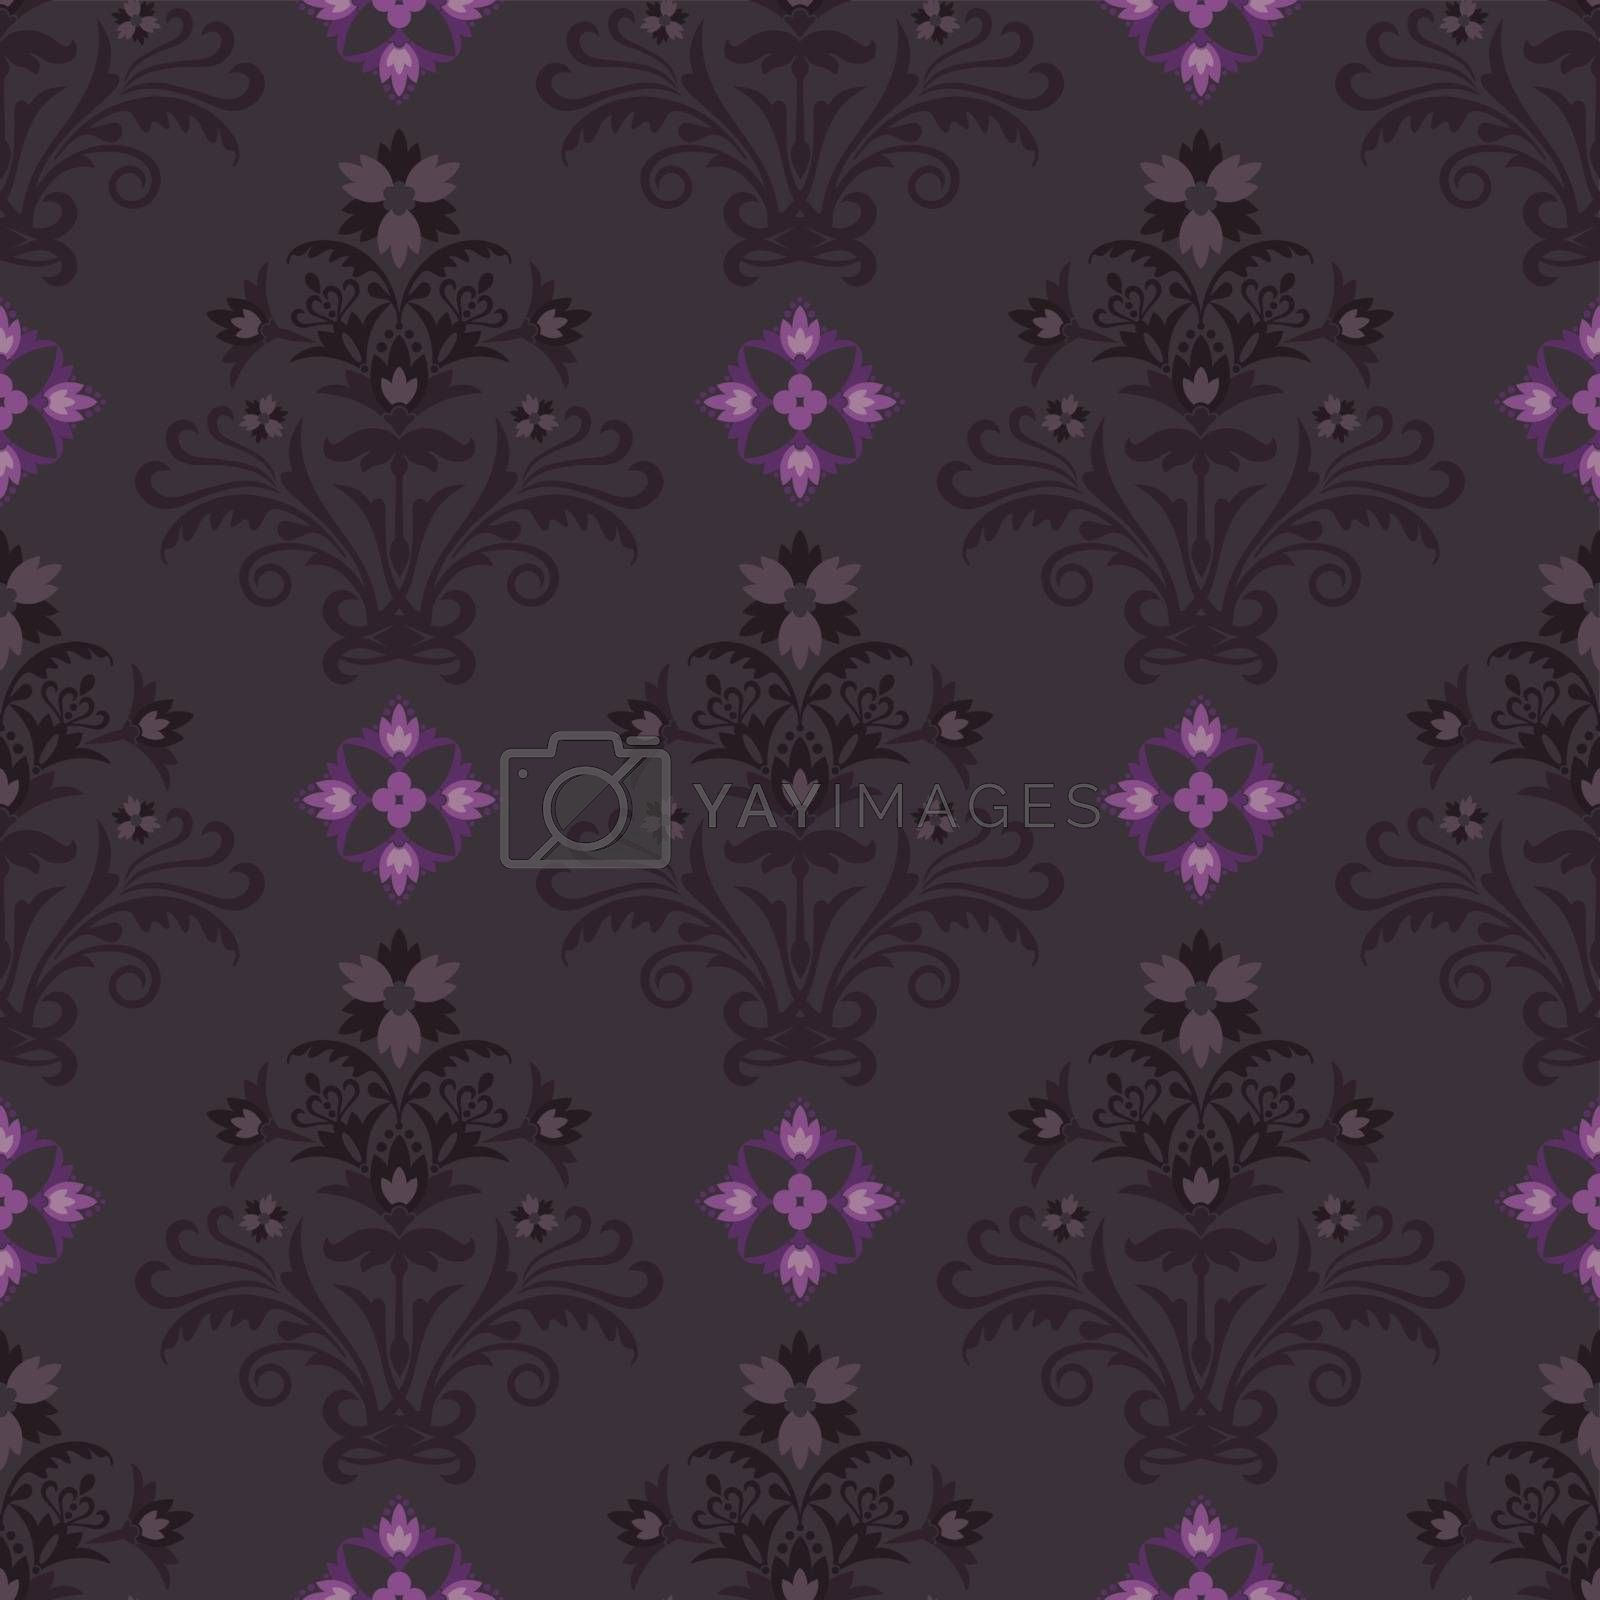 Seamless brown and pink wallpaper. This image is a vector illustration.